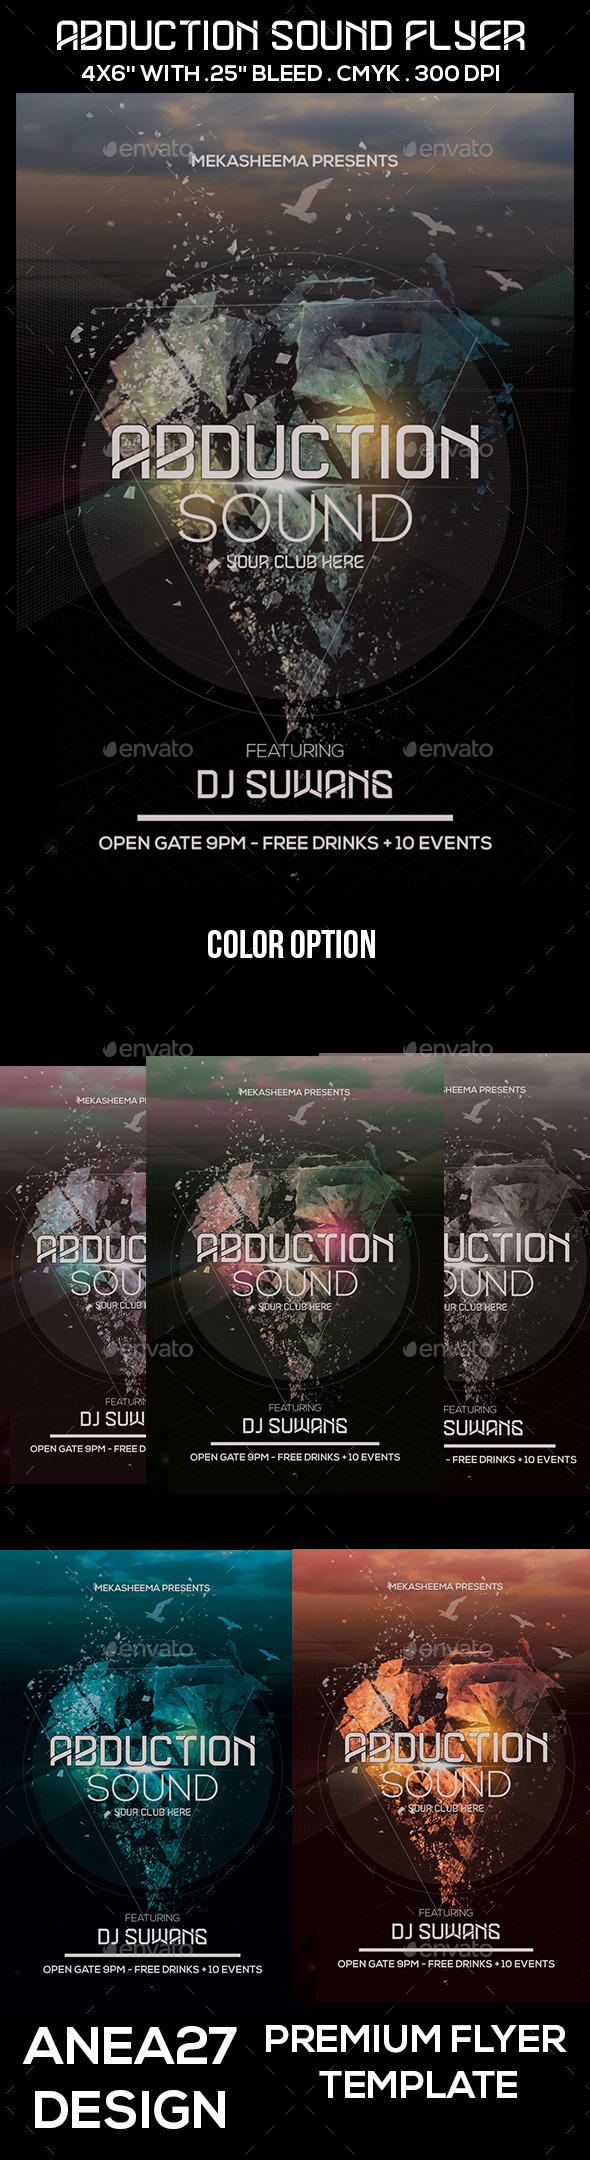 Abduction Sound Flyer